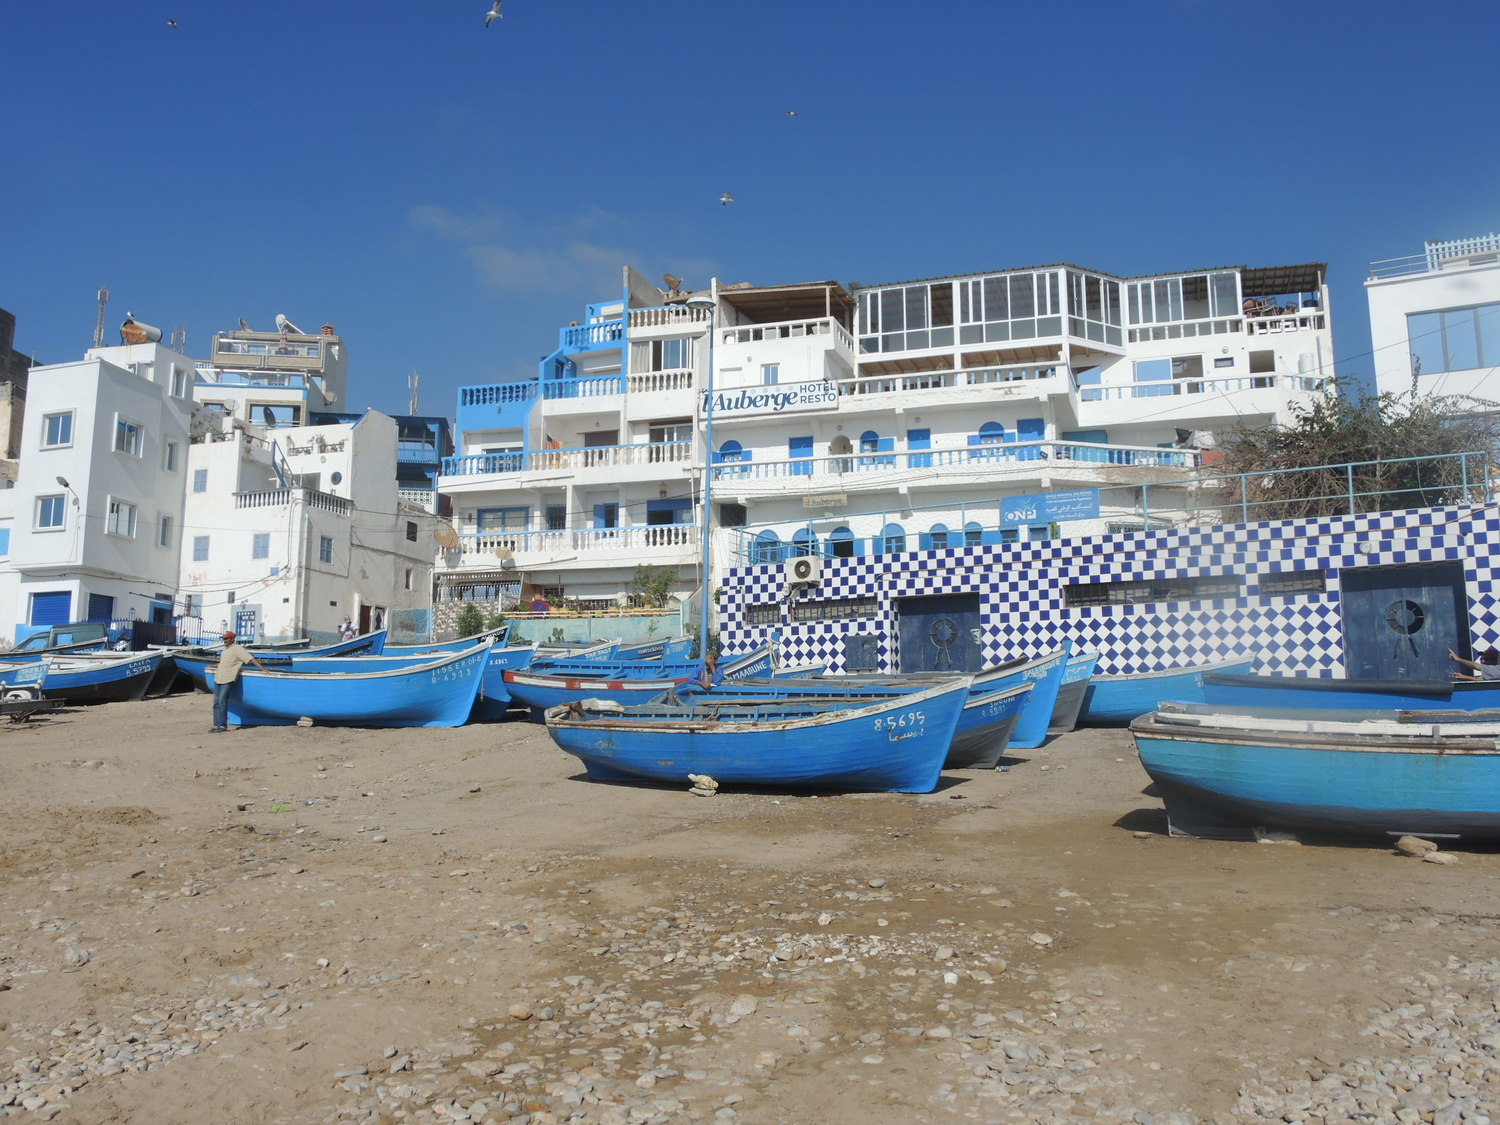 Boats in Taghazout